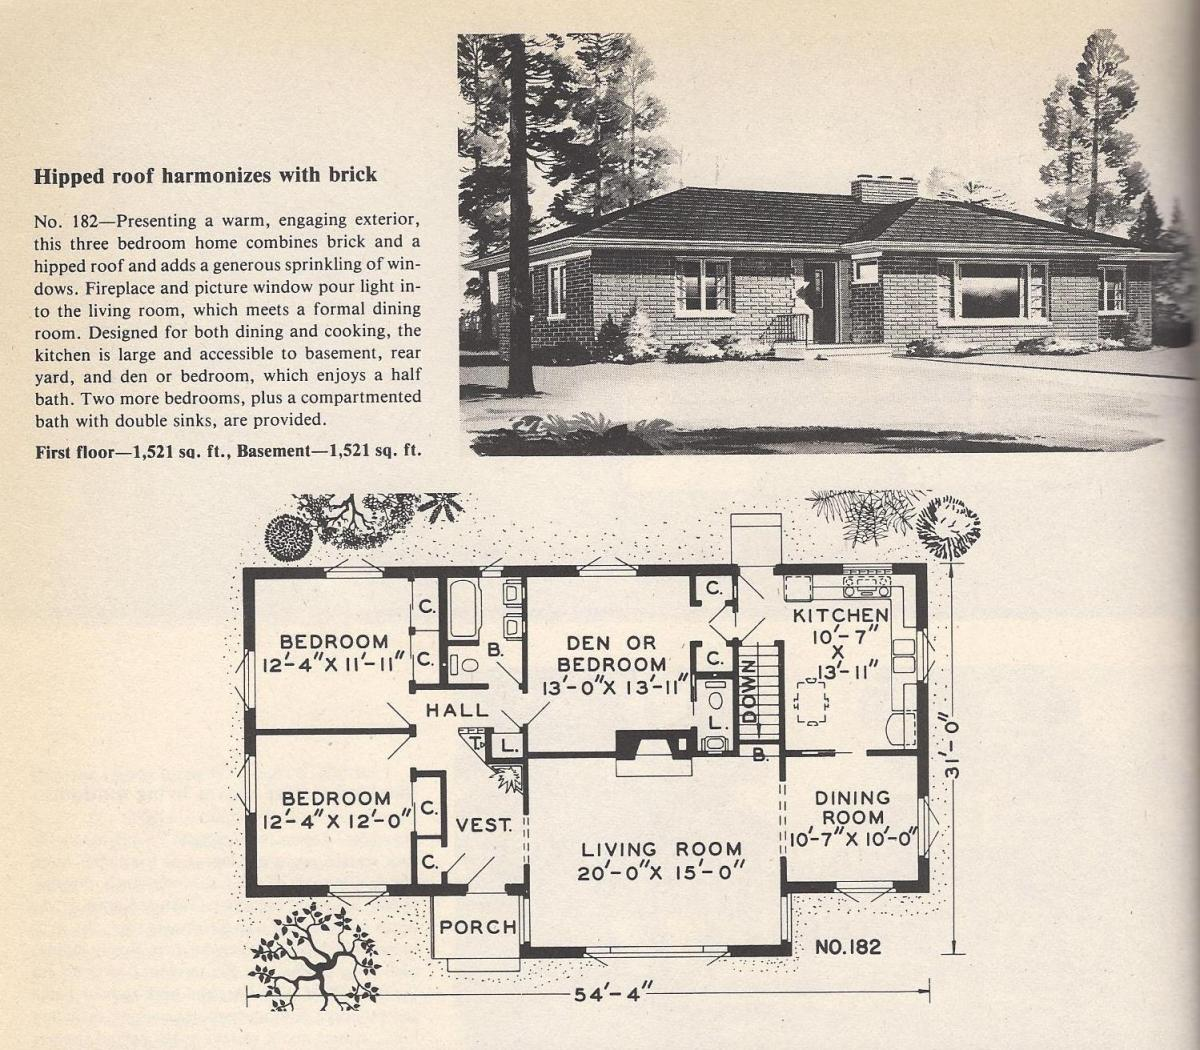 Vintage House Plans, Hipped Roof and Bricks